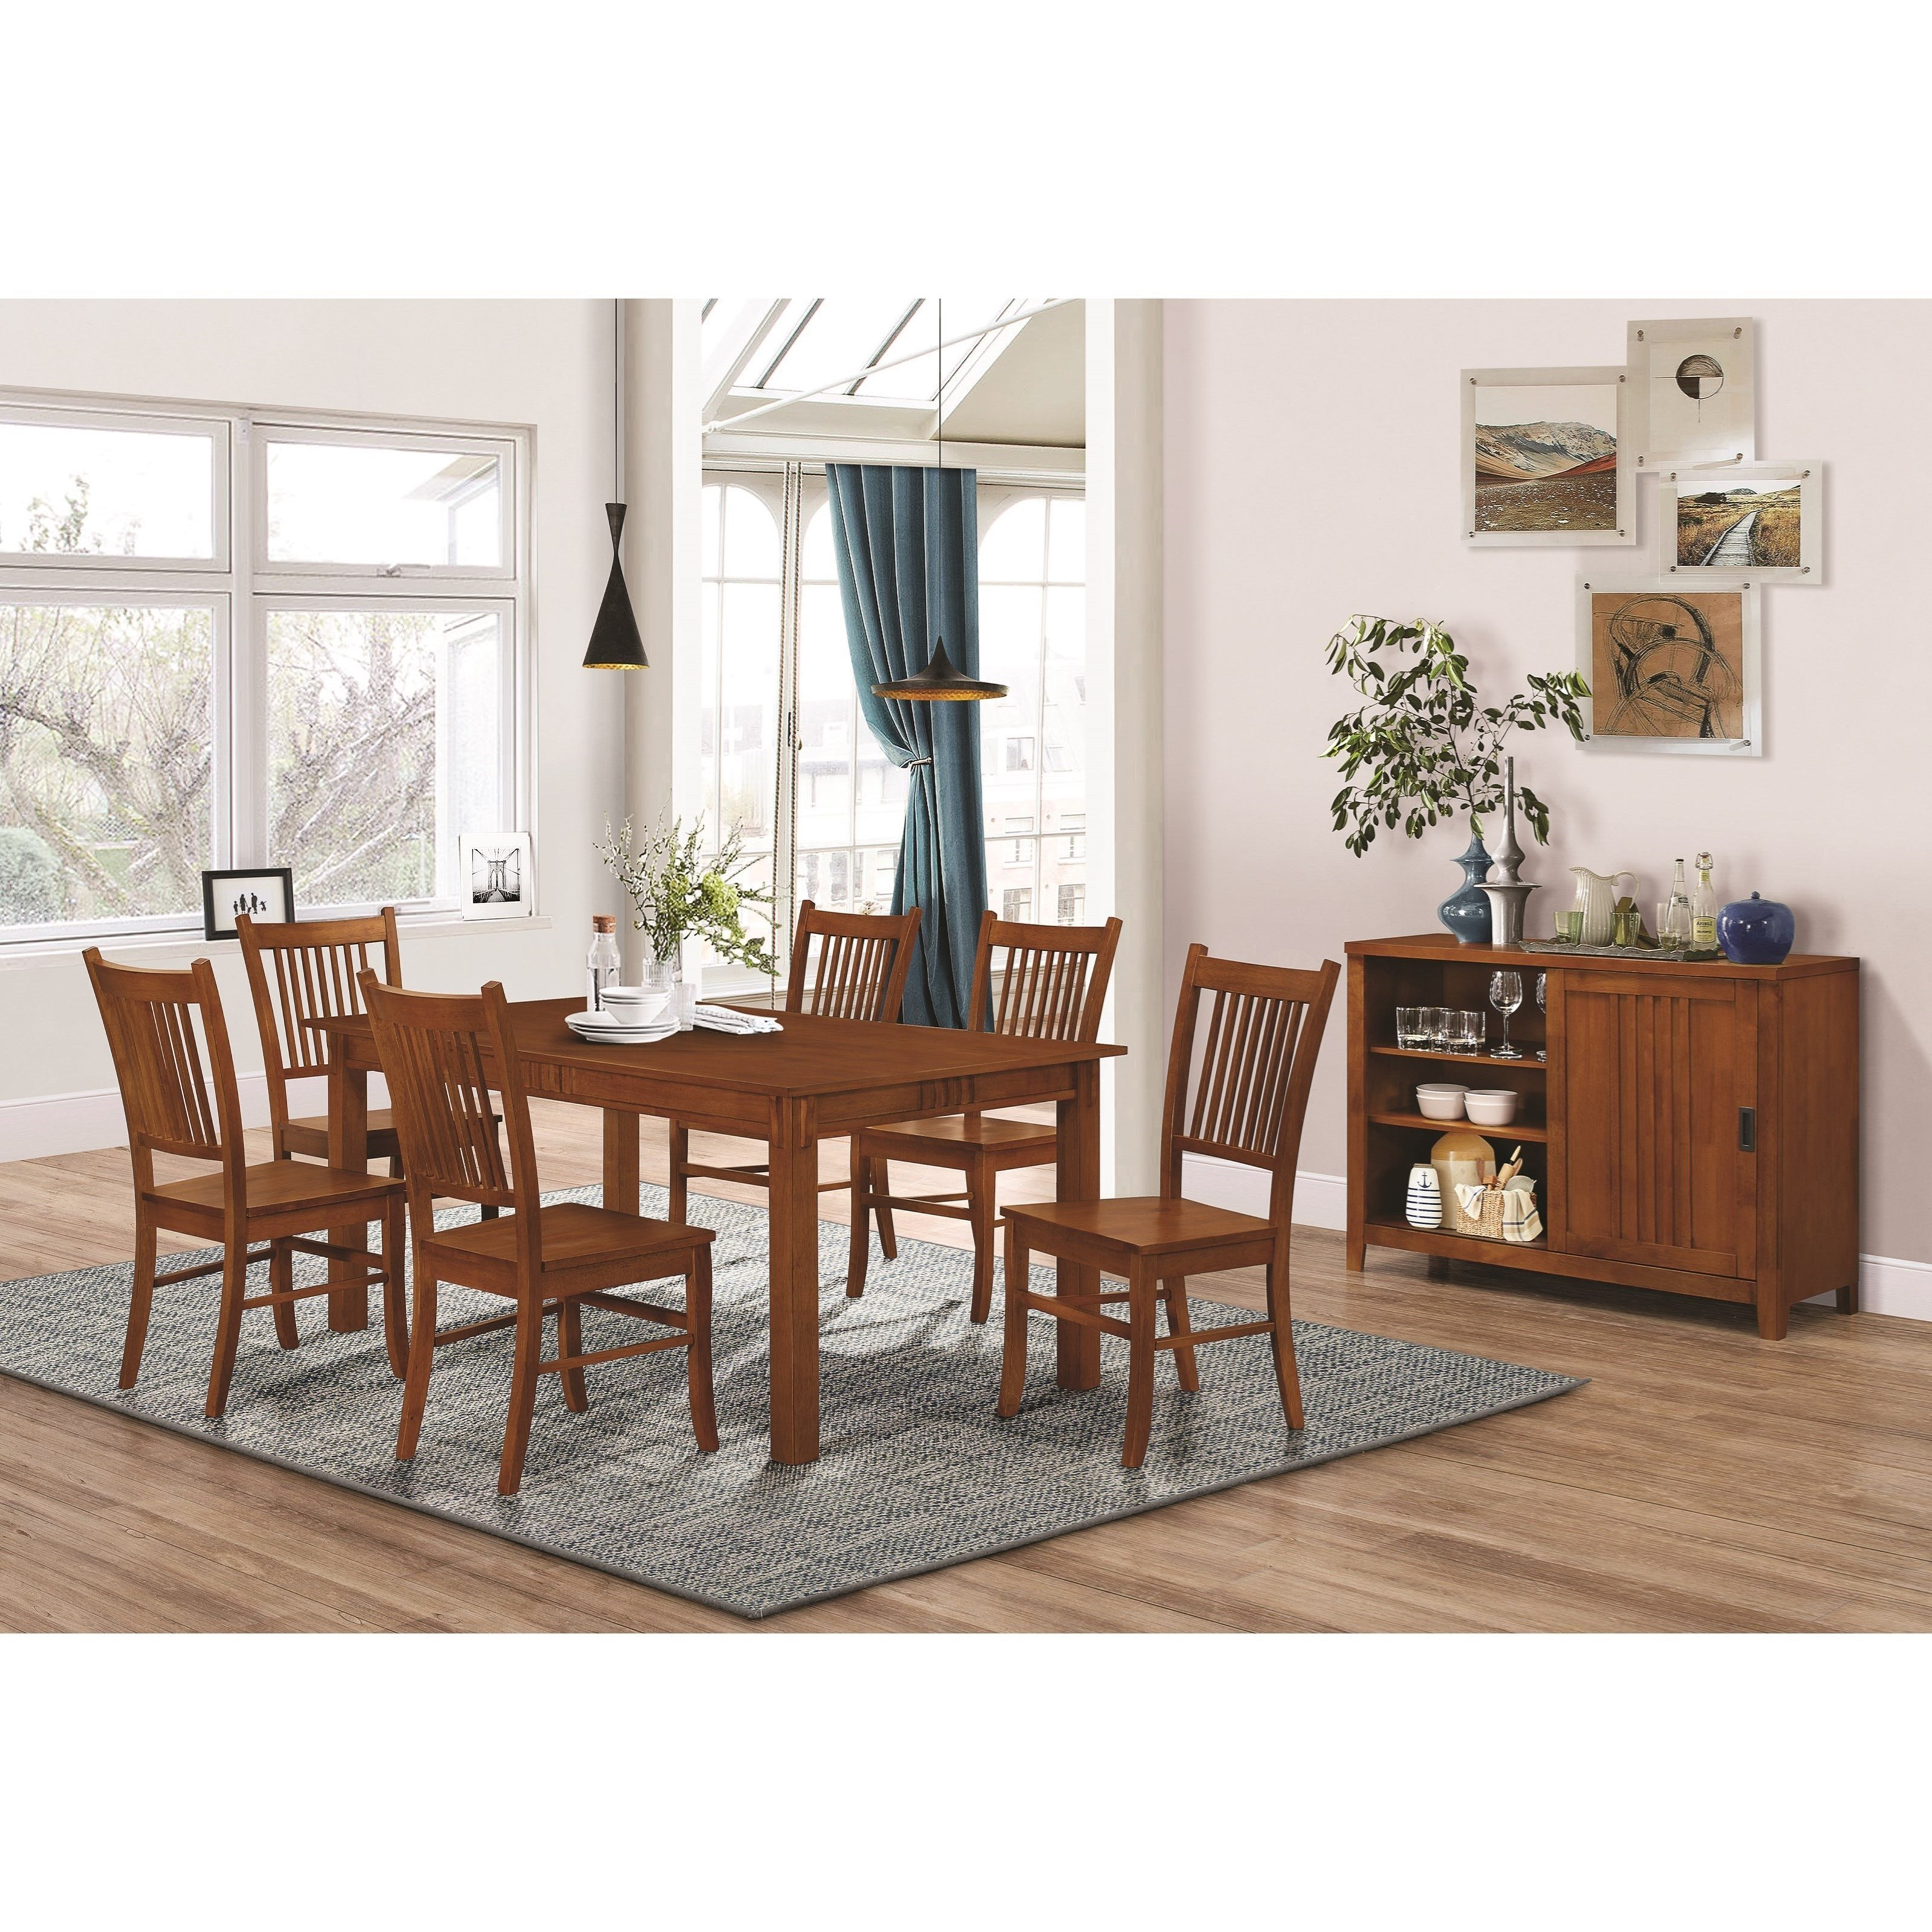 Mission Style Dining Room Tables: Marbrisa Mission Style 7 Piece Dining Set